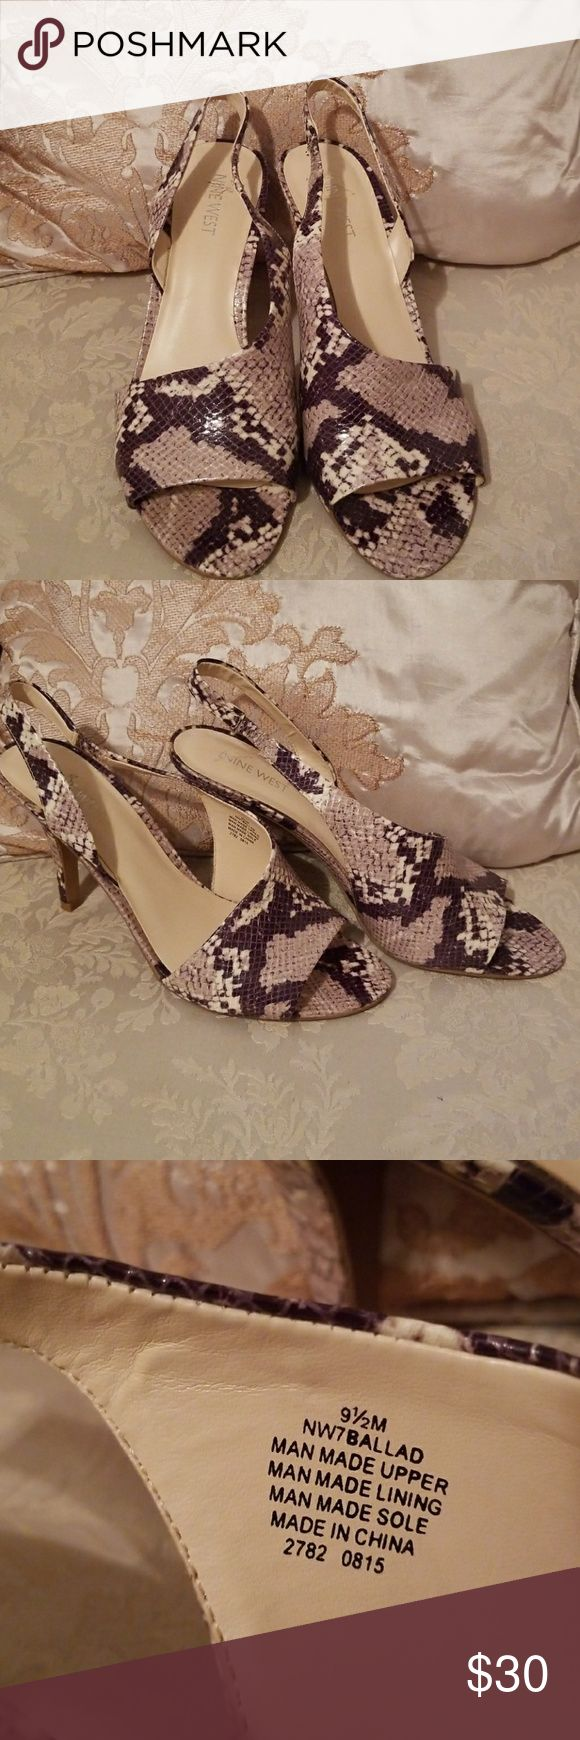 Nine West snake pattern heels These are beautiful Nine West heels! They are in Great condition!!! Nine West Shoes Heels